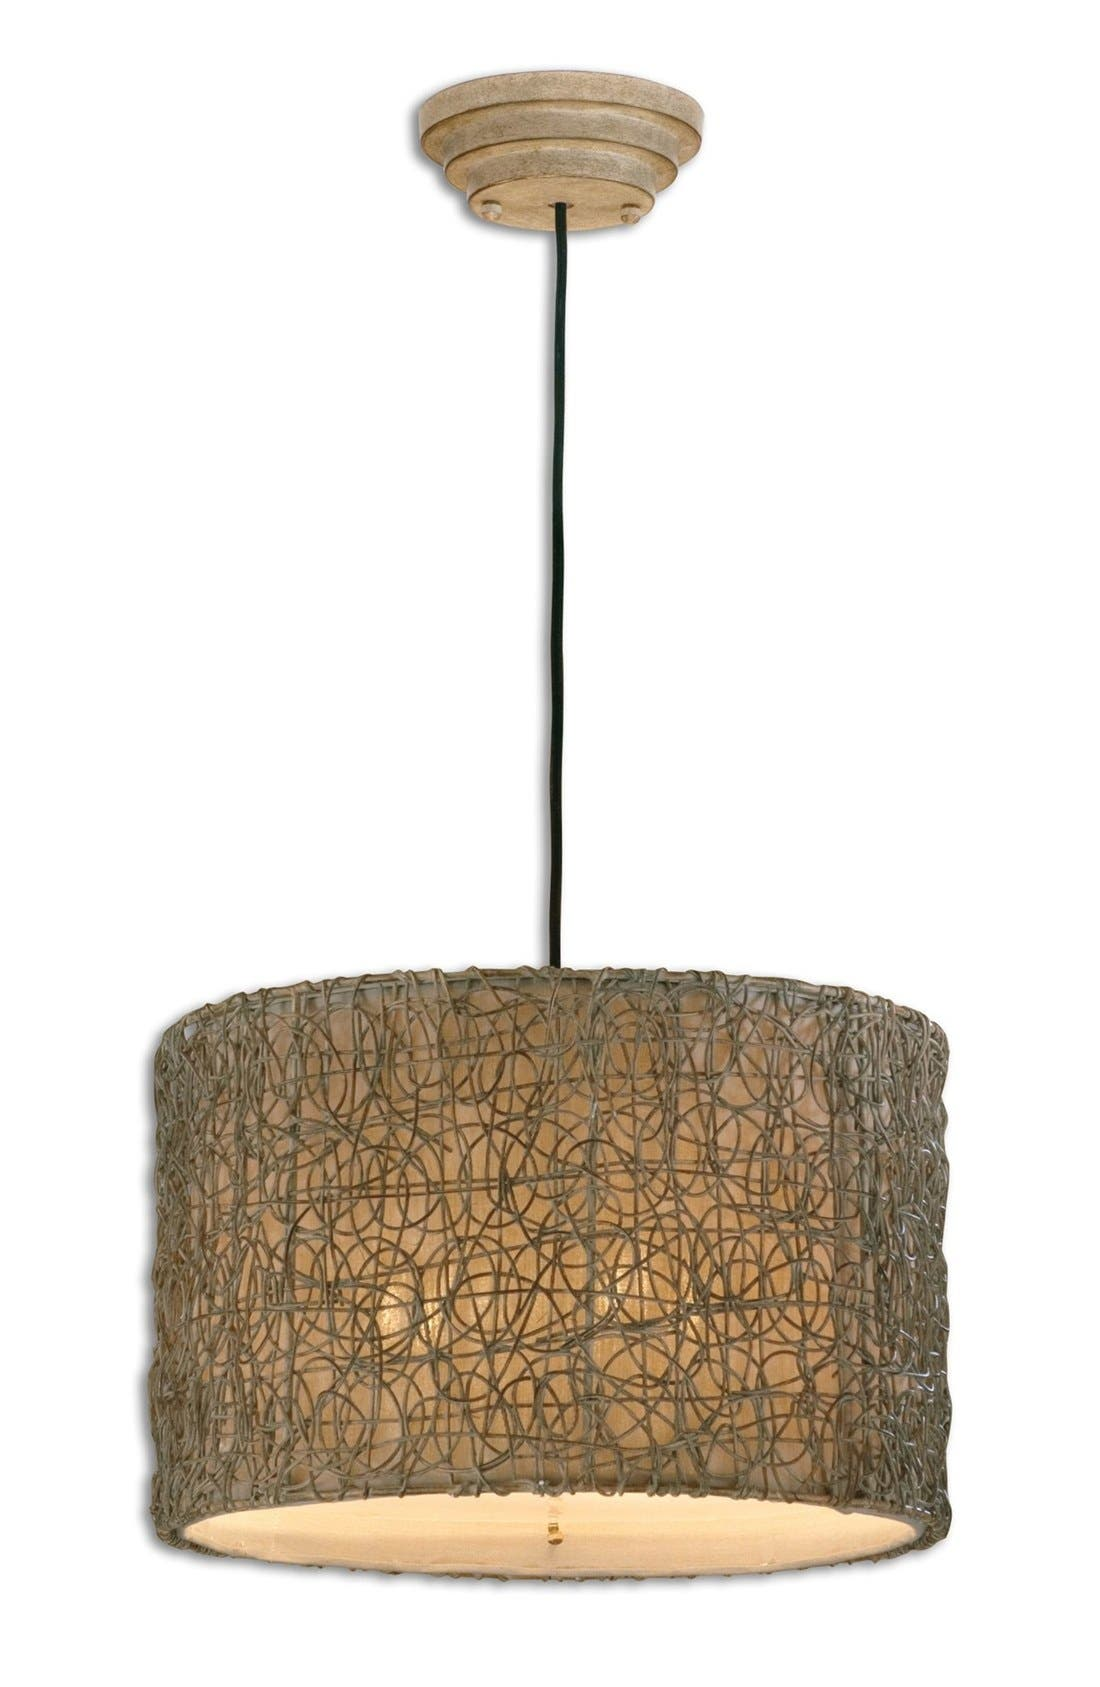 Main Image - Uttermost Knotted Rattan Pendant Light